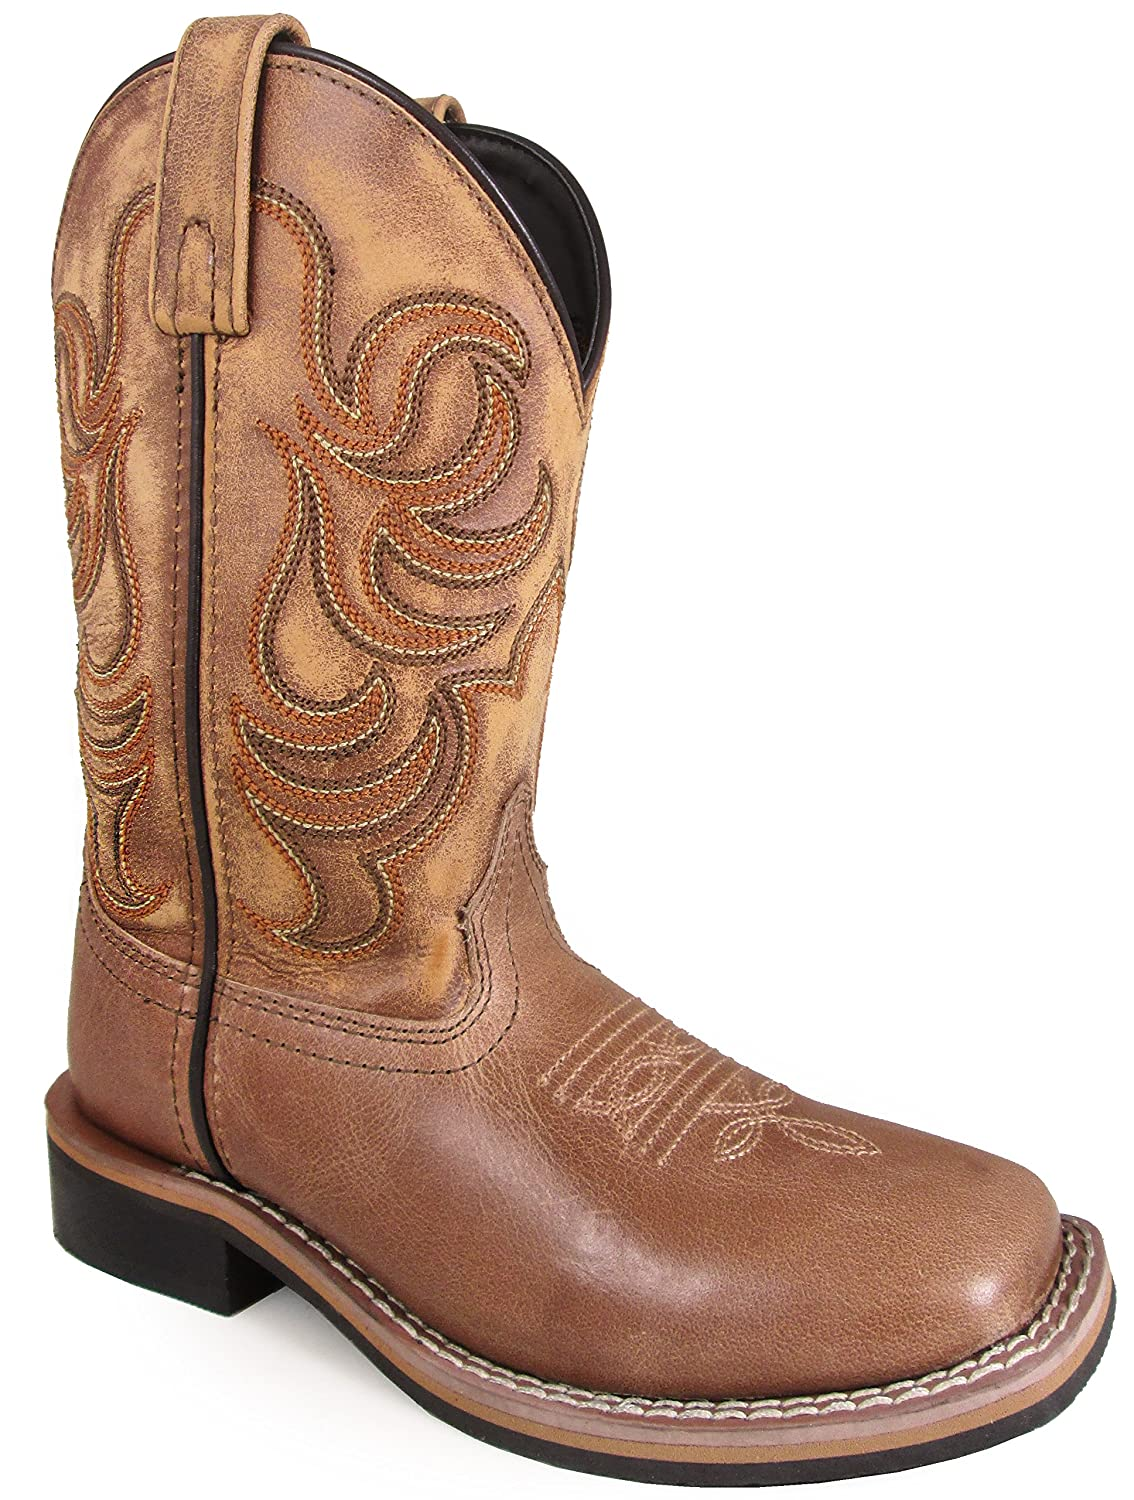 Smoky Mountain Youths Leroy Stitched Design Leather Square Toe Pull On Straps Tan Boots